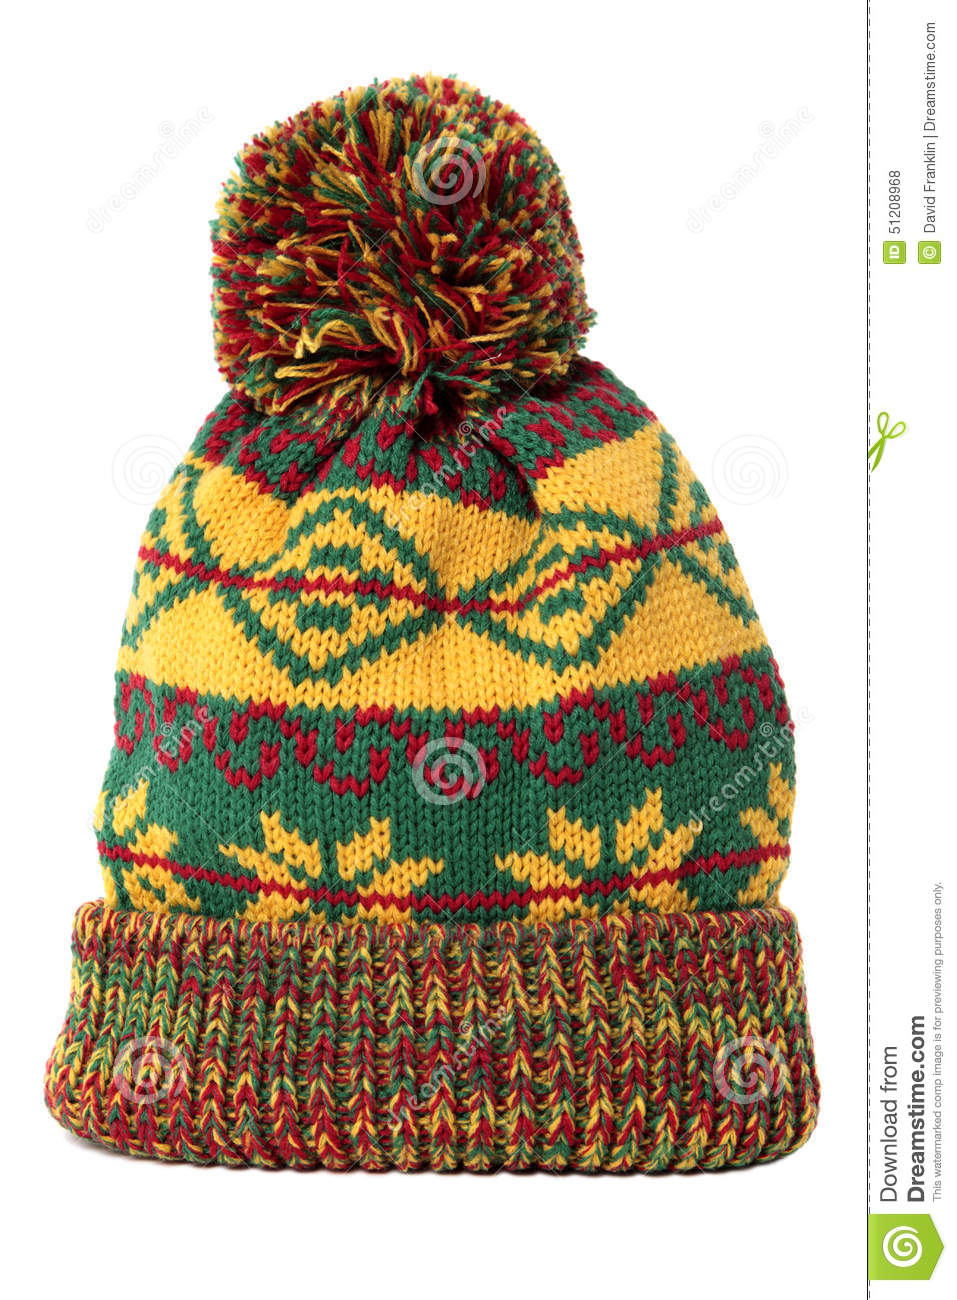 0e5abca01fd Winter Bobble Hat Or Ski Hat Isolated On White Background Stock ...